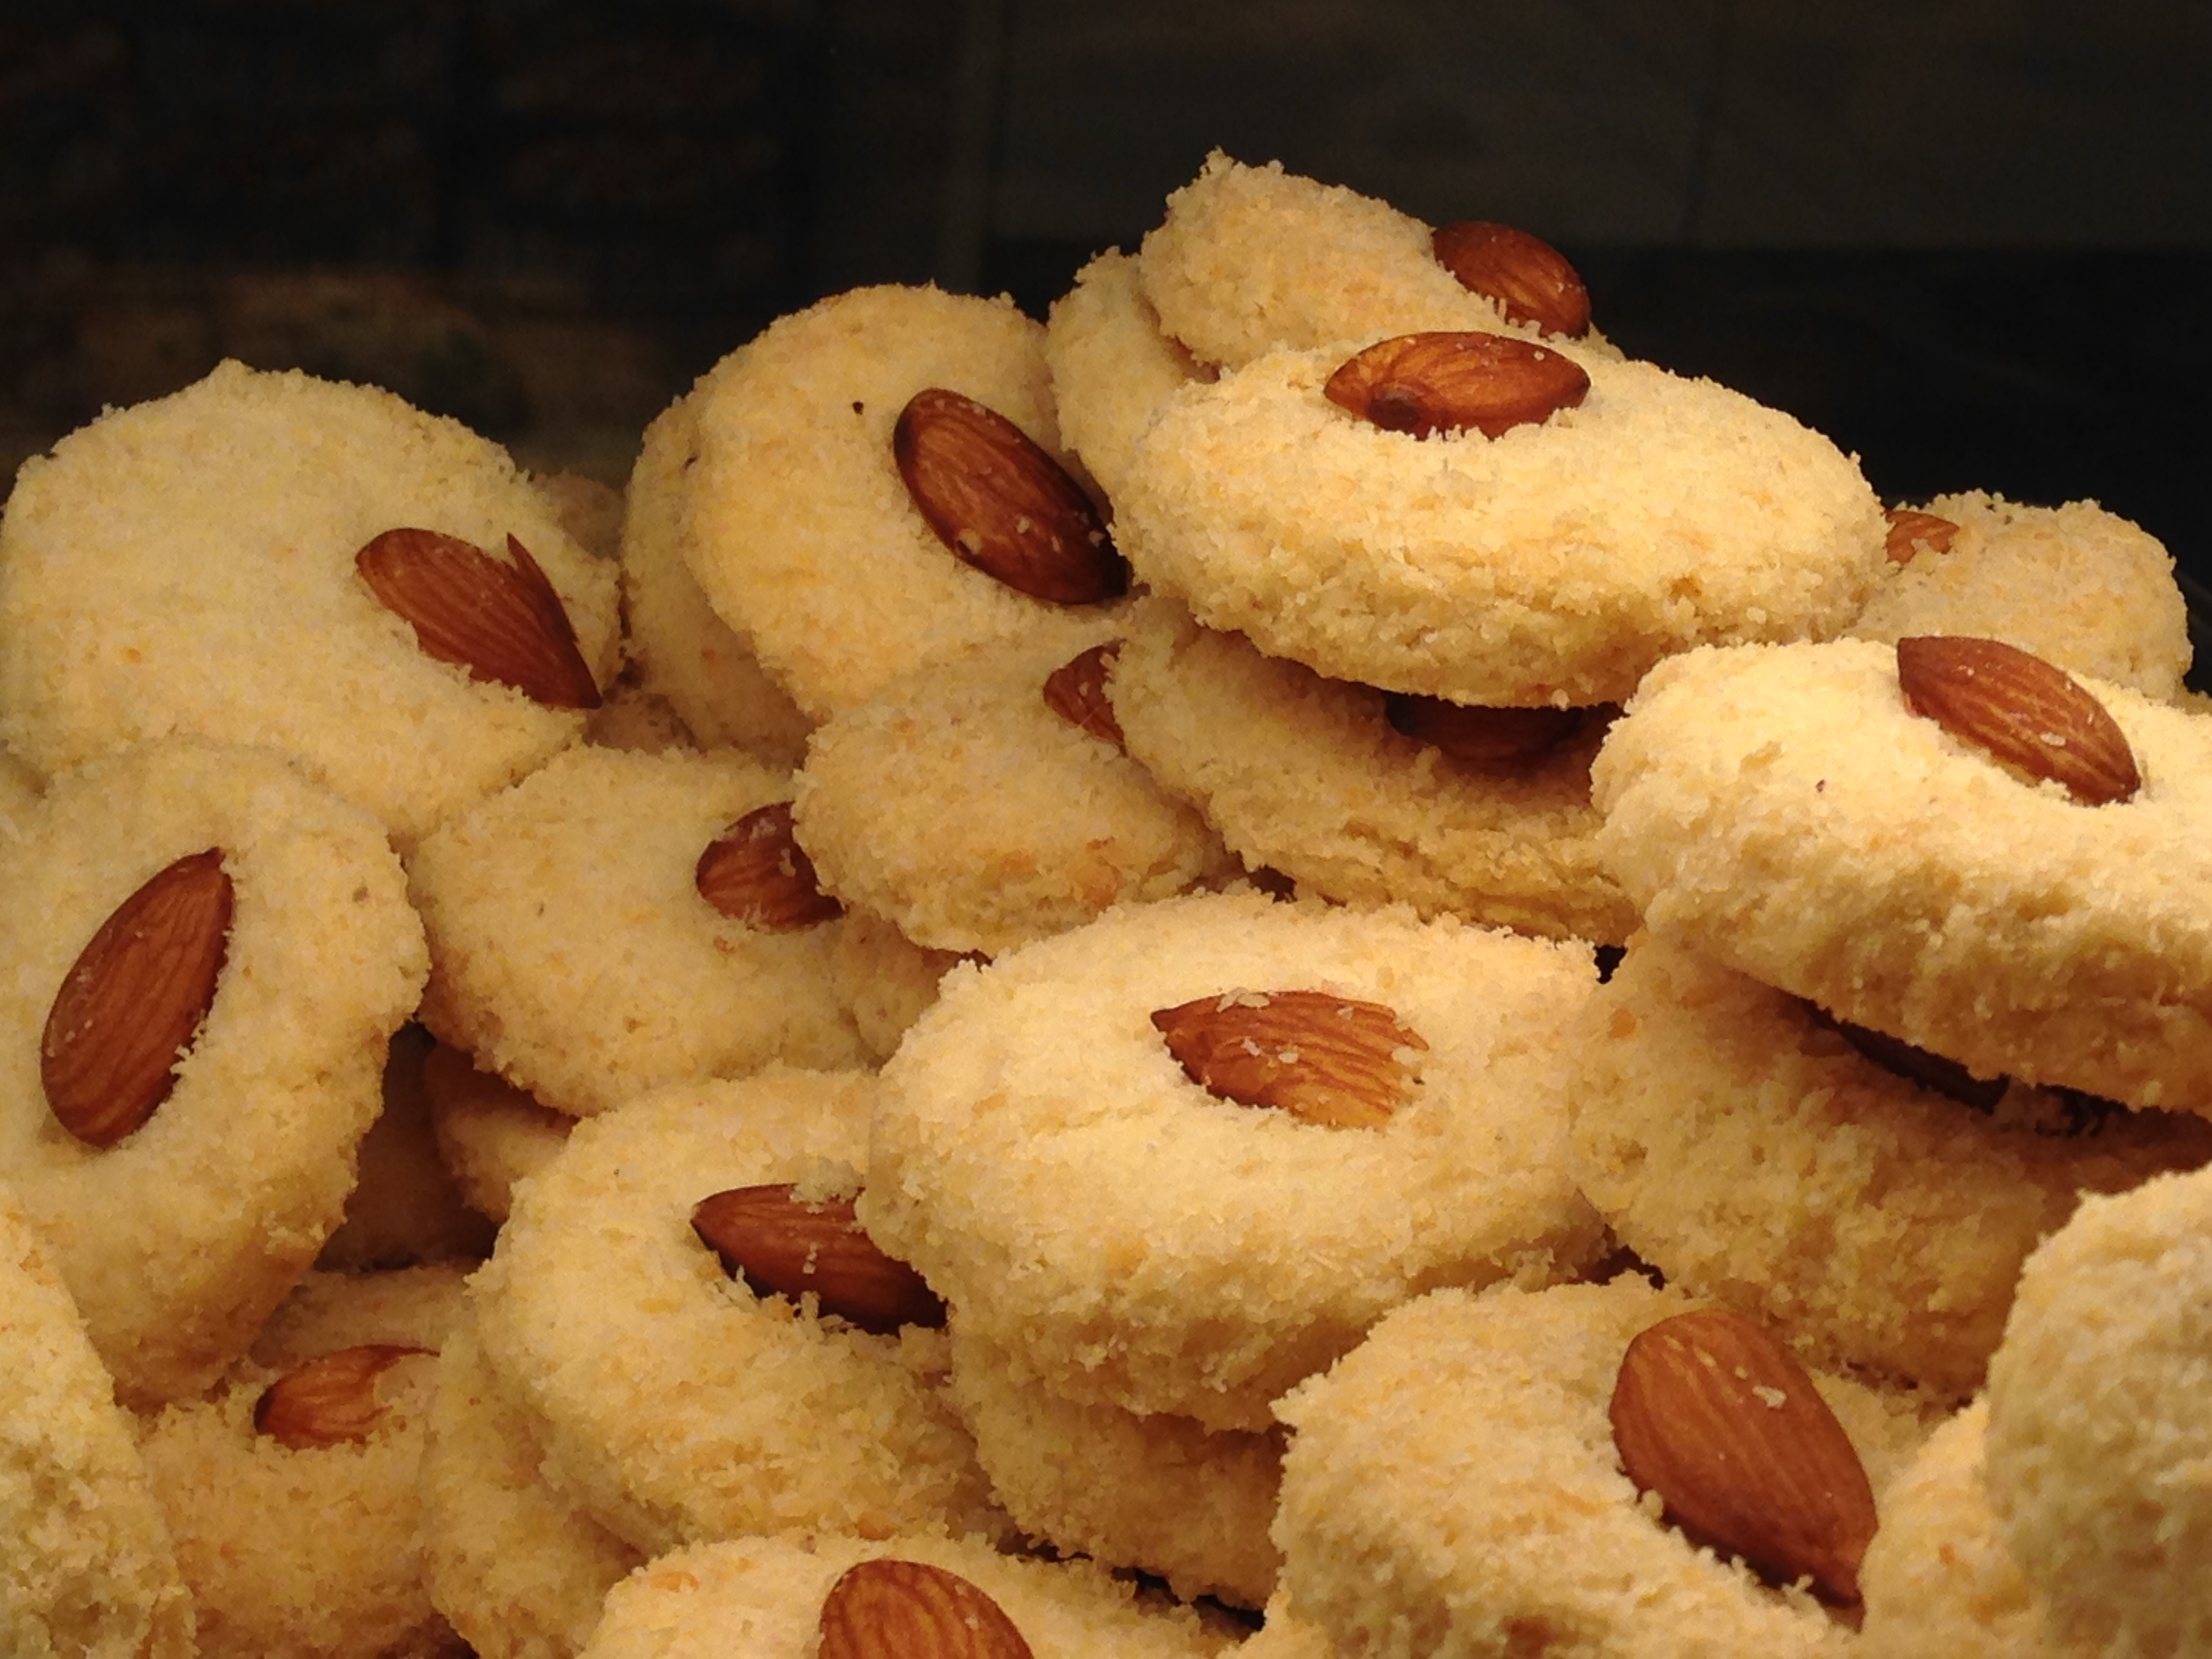 File:almond biscuit bakery.jpg wikimedia commons